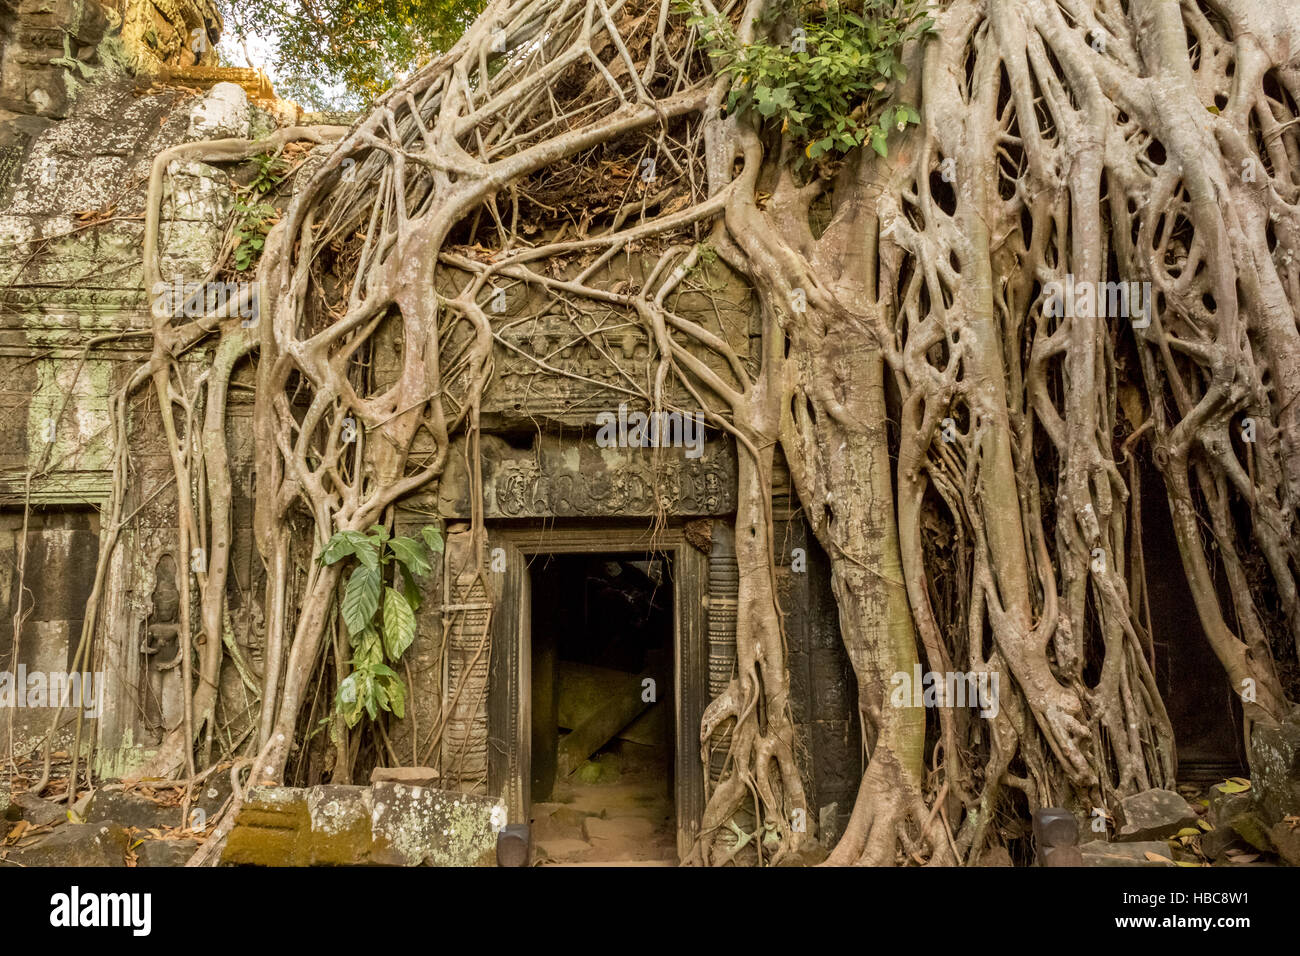 temple ruins overgrown by trees - Stock Image